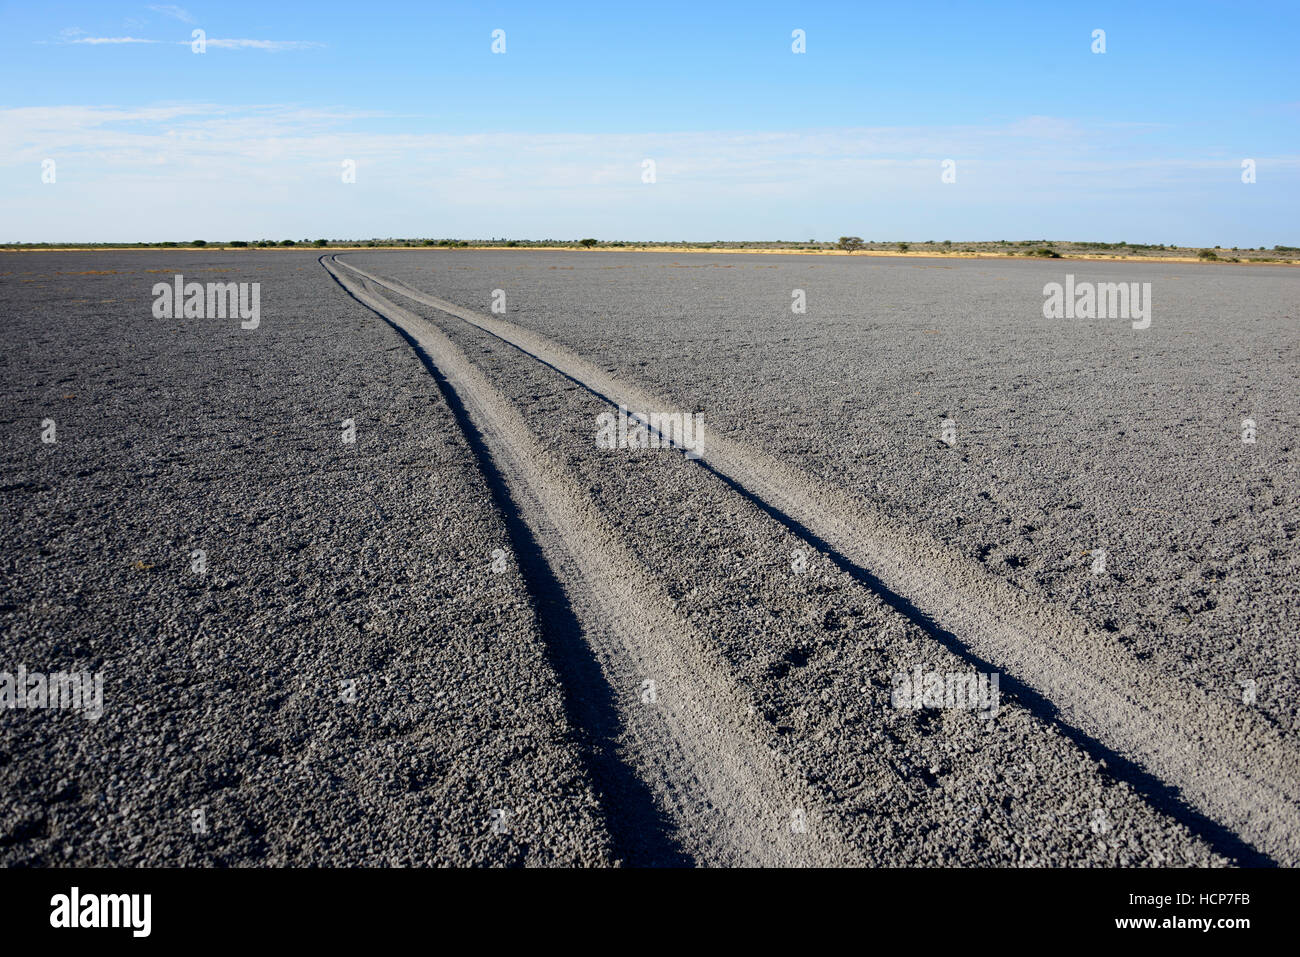 Tire tracks through Deception Pan in Deception Valley of the Central Kalahari Game Reserve, Botswana - Stock Image